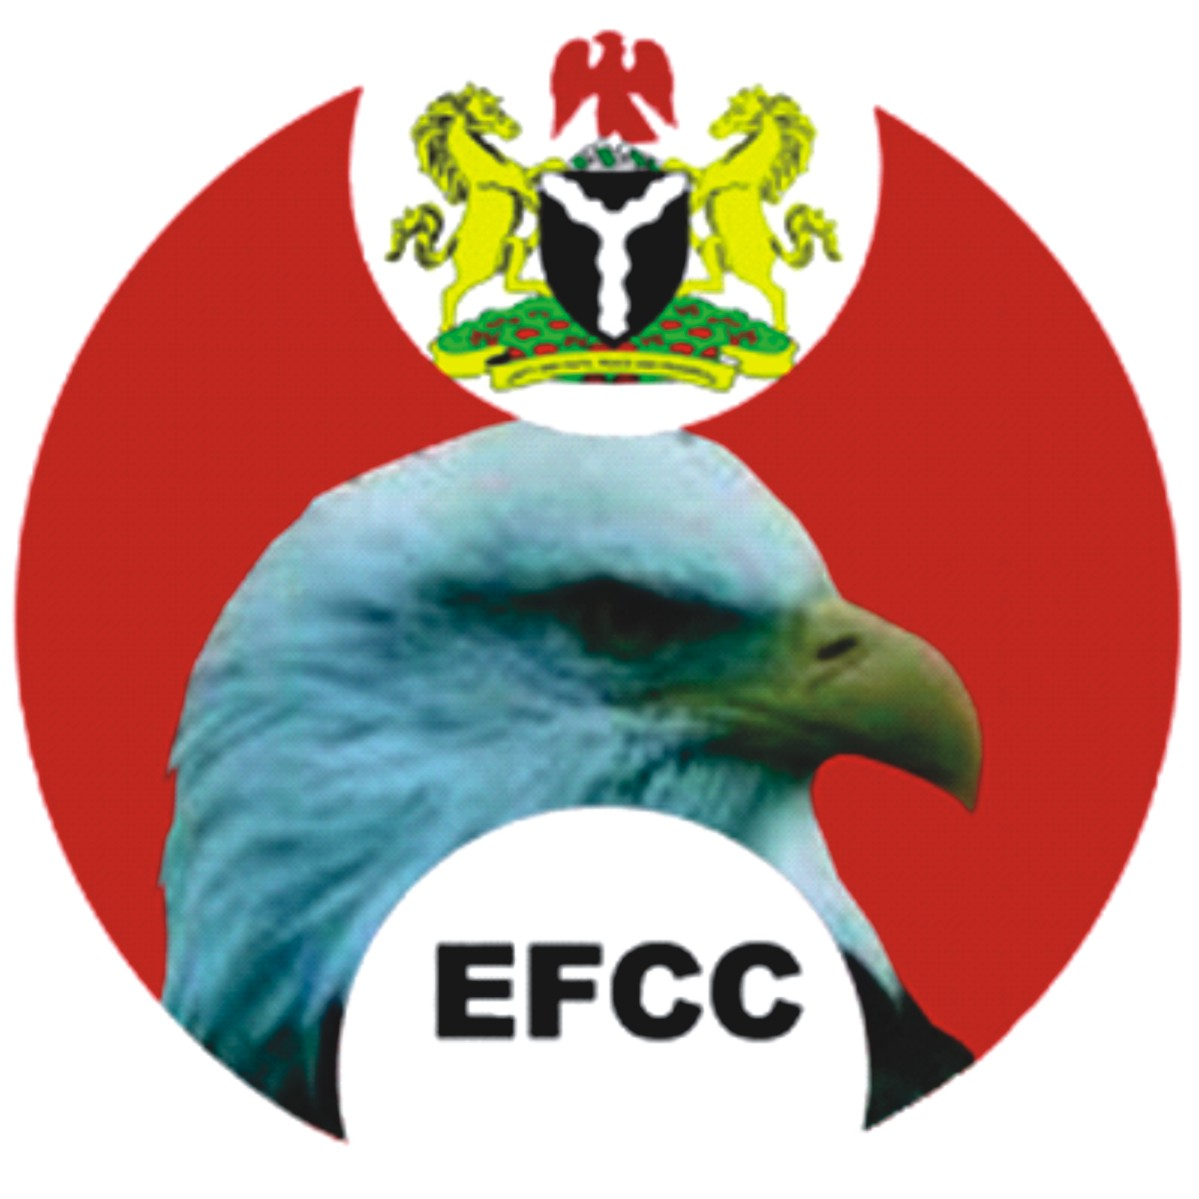 EFCC Secures Conviction Of 18 Cybercrime Offenders In C' River –